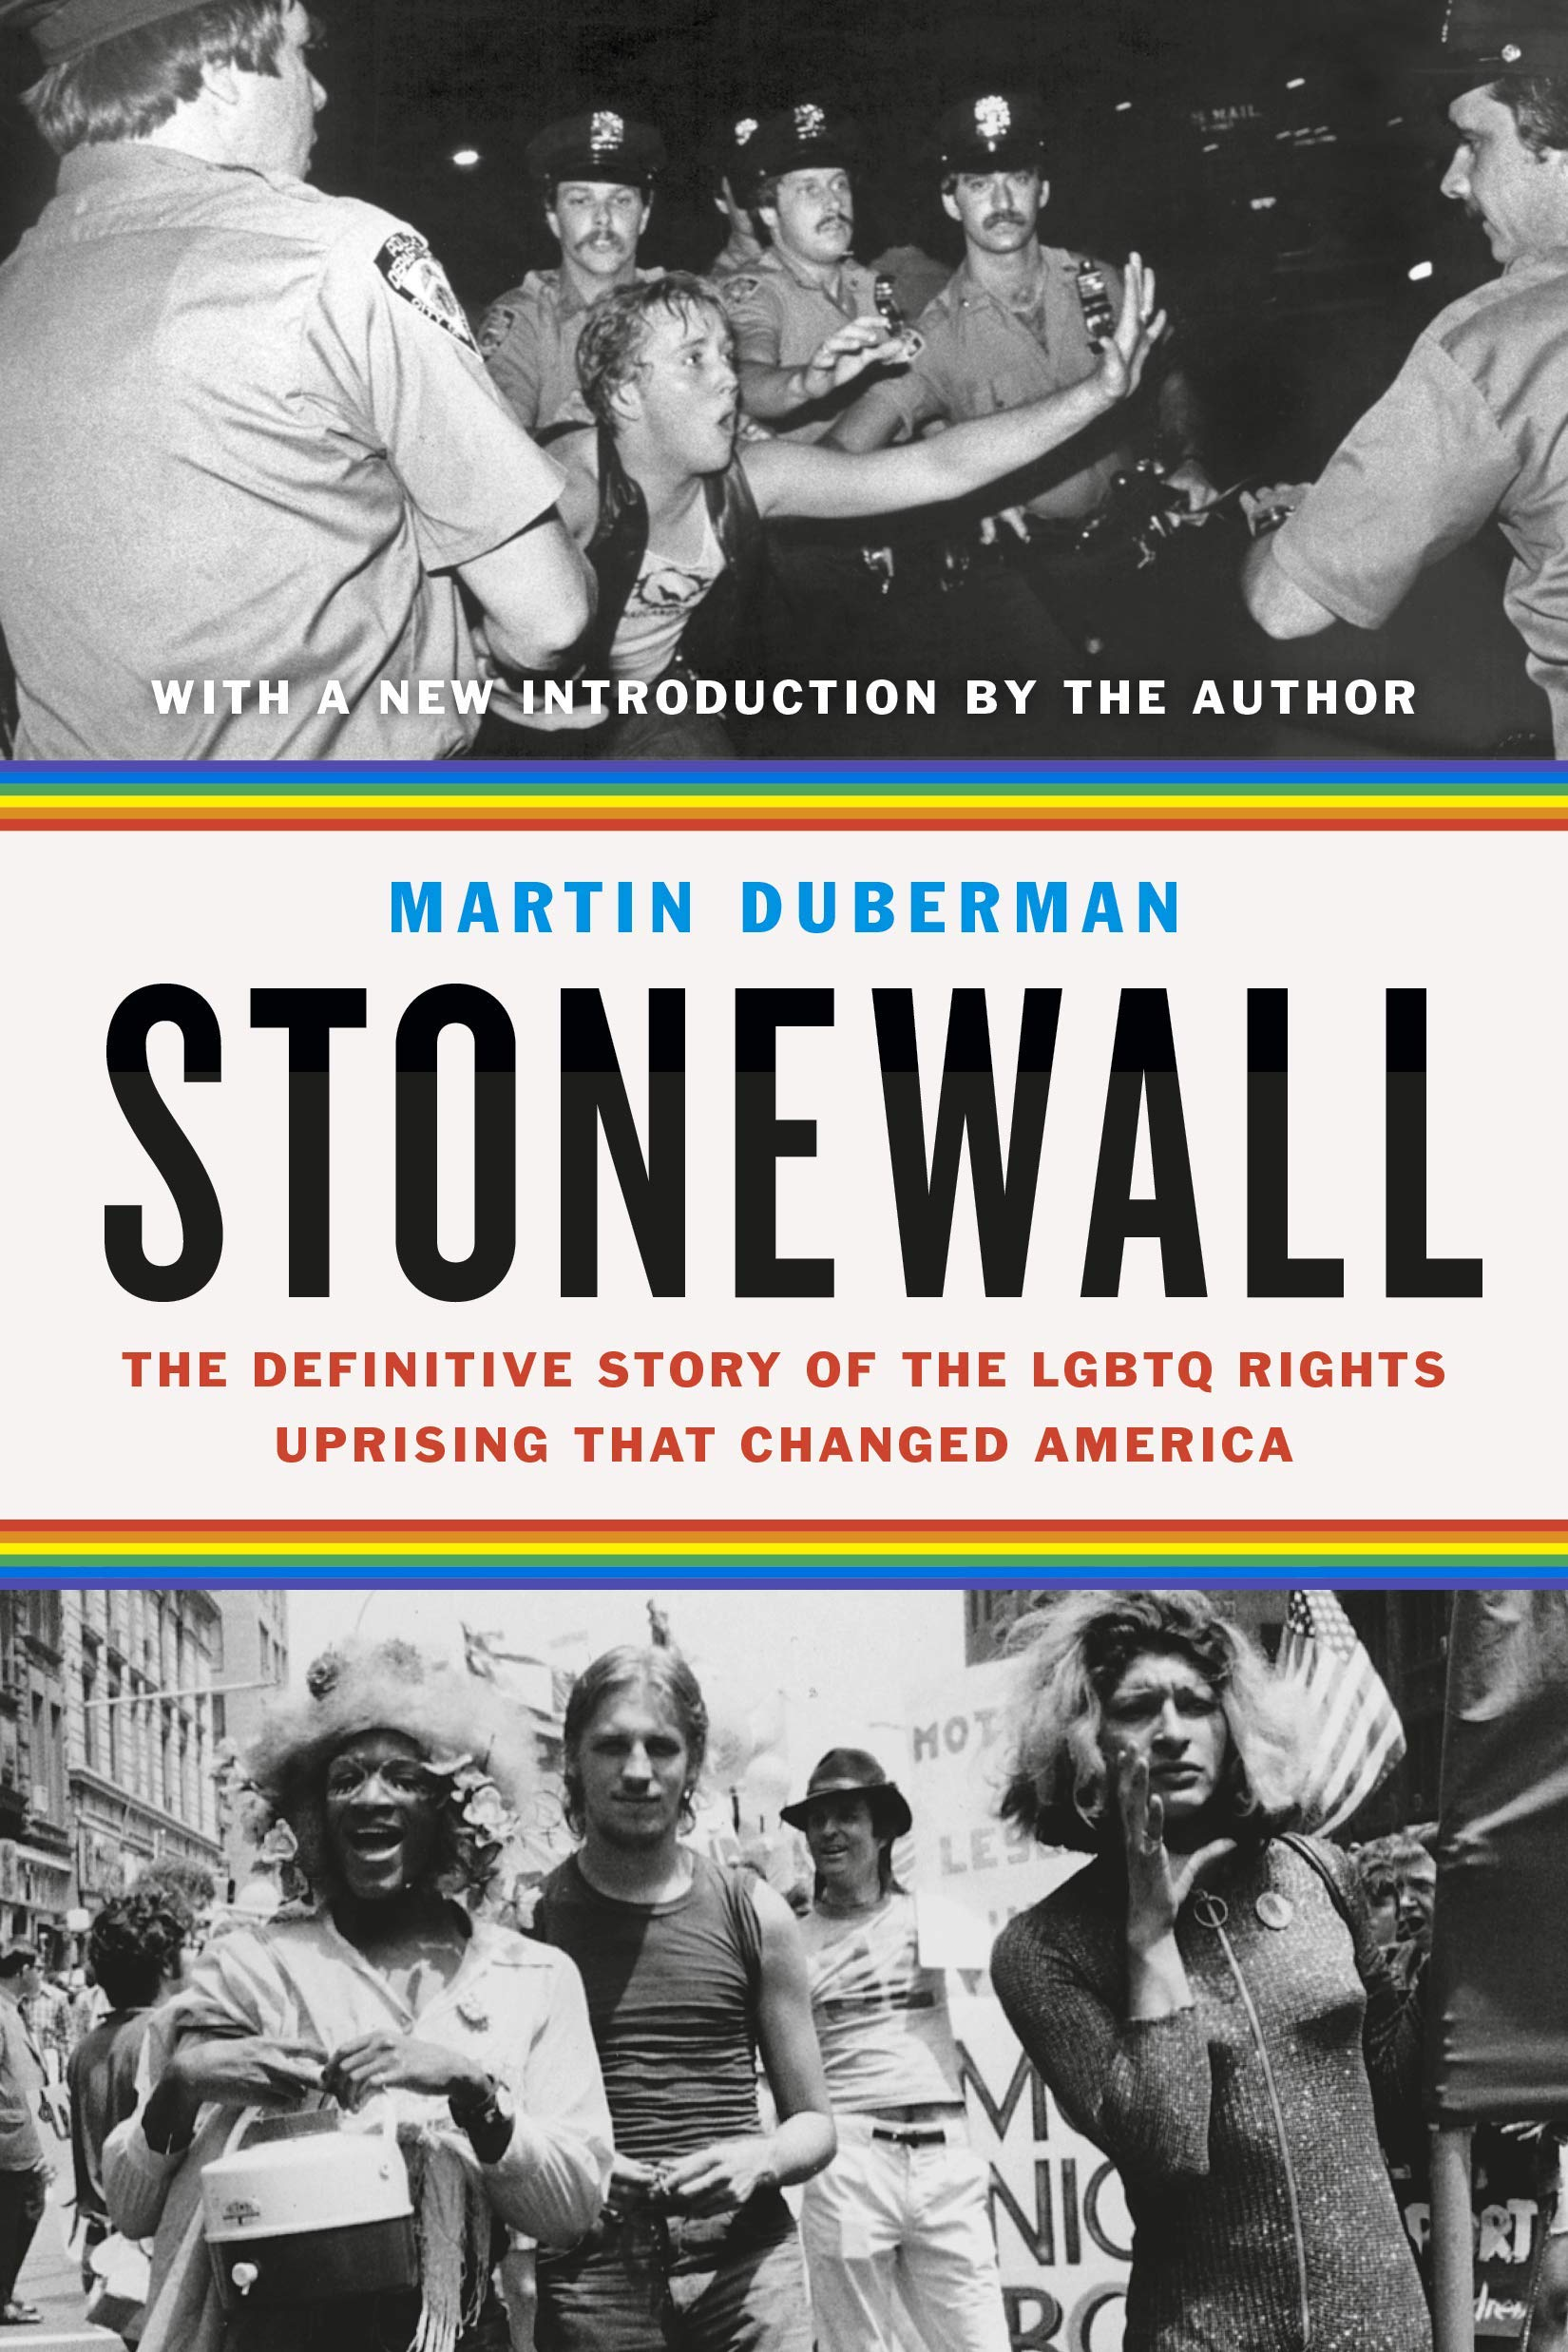 Stonewall: The Definitive Story